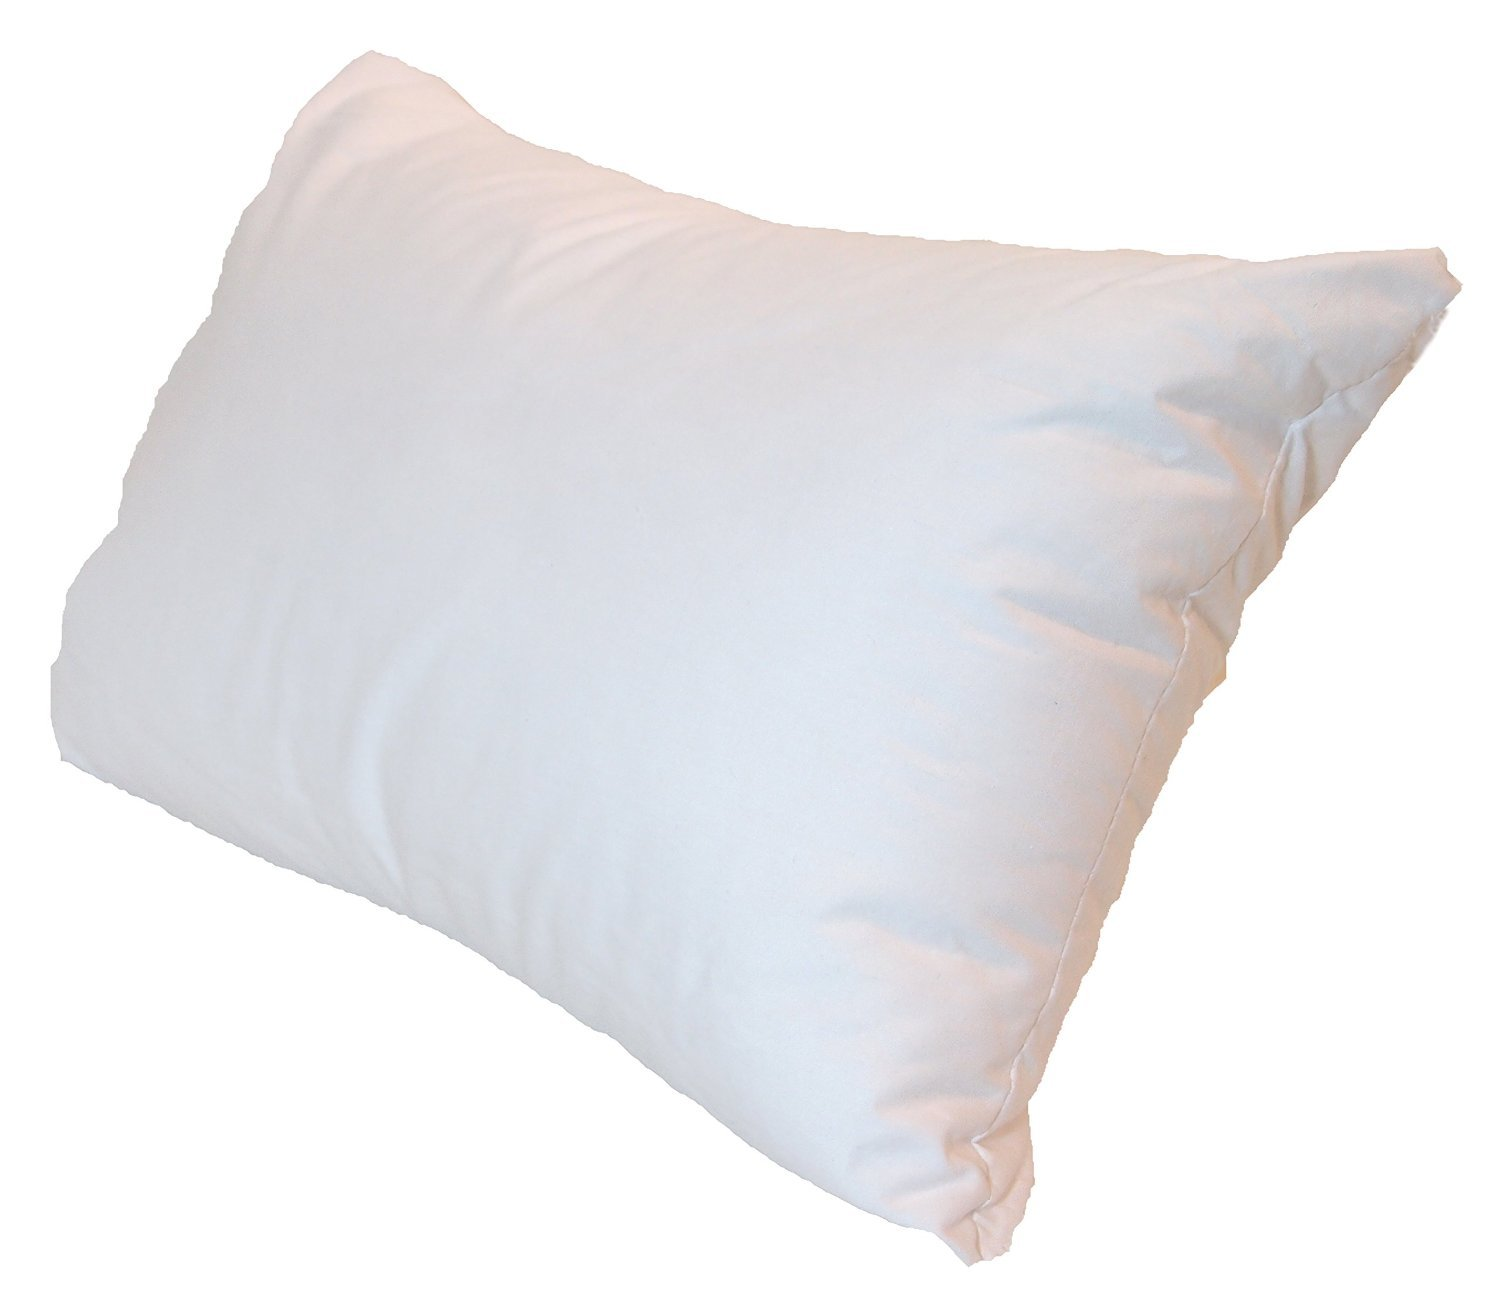 blank pillow size bulk pillowcase wholesale cheap of large pillows white covers throw inserts